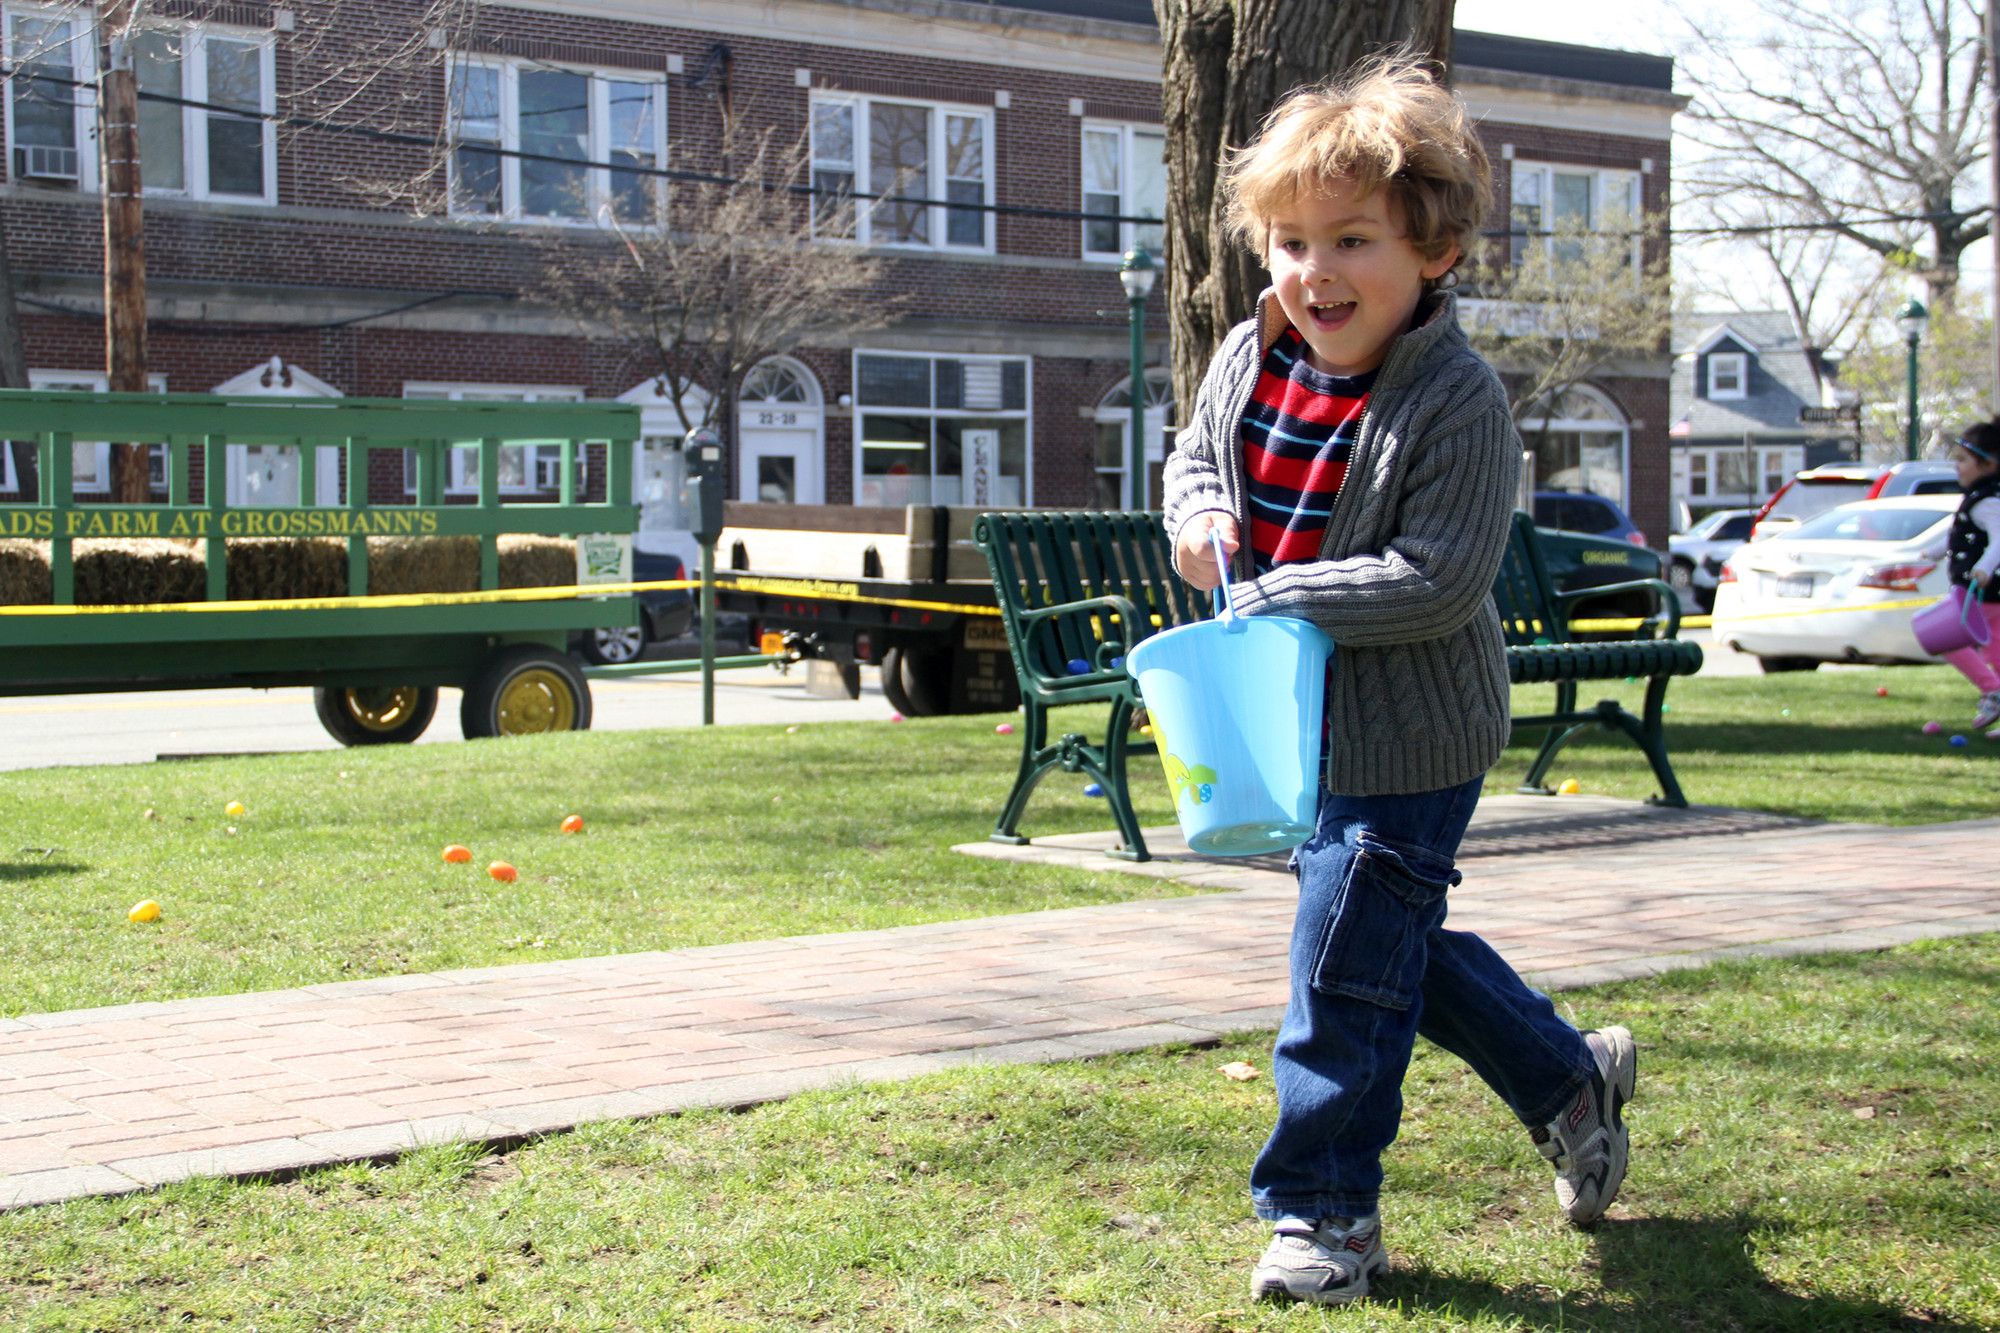 James Gorra dashed across the field at Gazebo Park to fill his bucket with as many eggs as he could find at this year�s event.